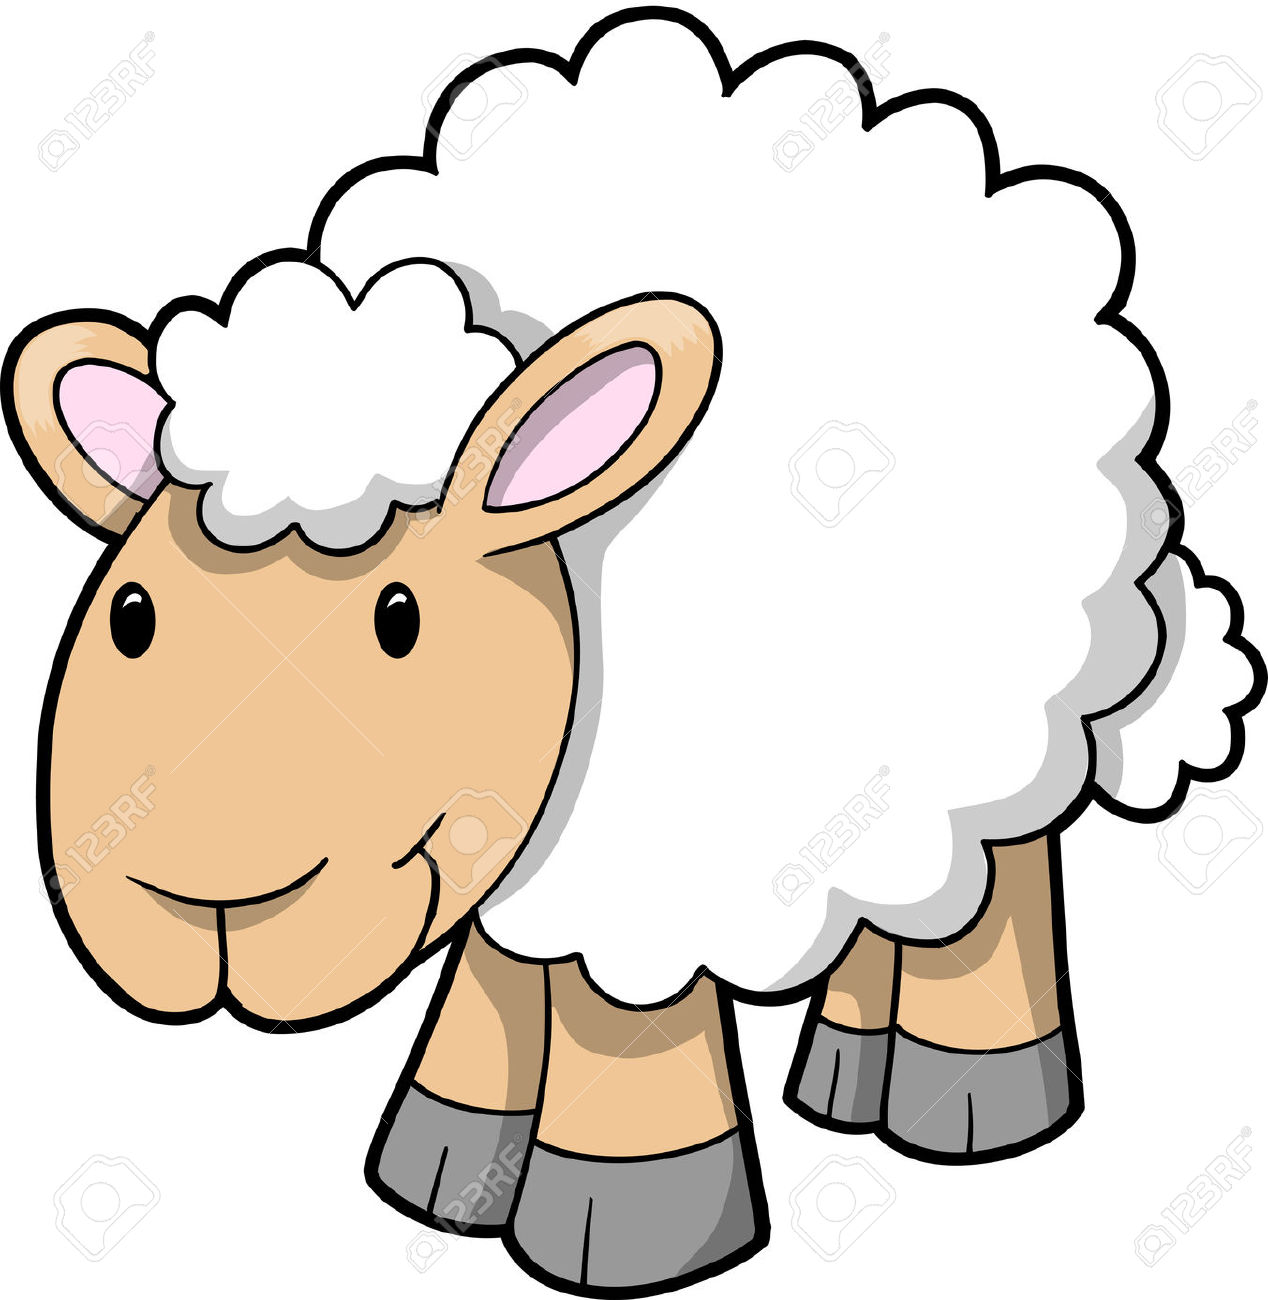 1268x1300 Of Happy Sheep Stock Vector Sheep Cartoon Lamb Id 64748 Clipart